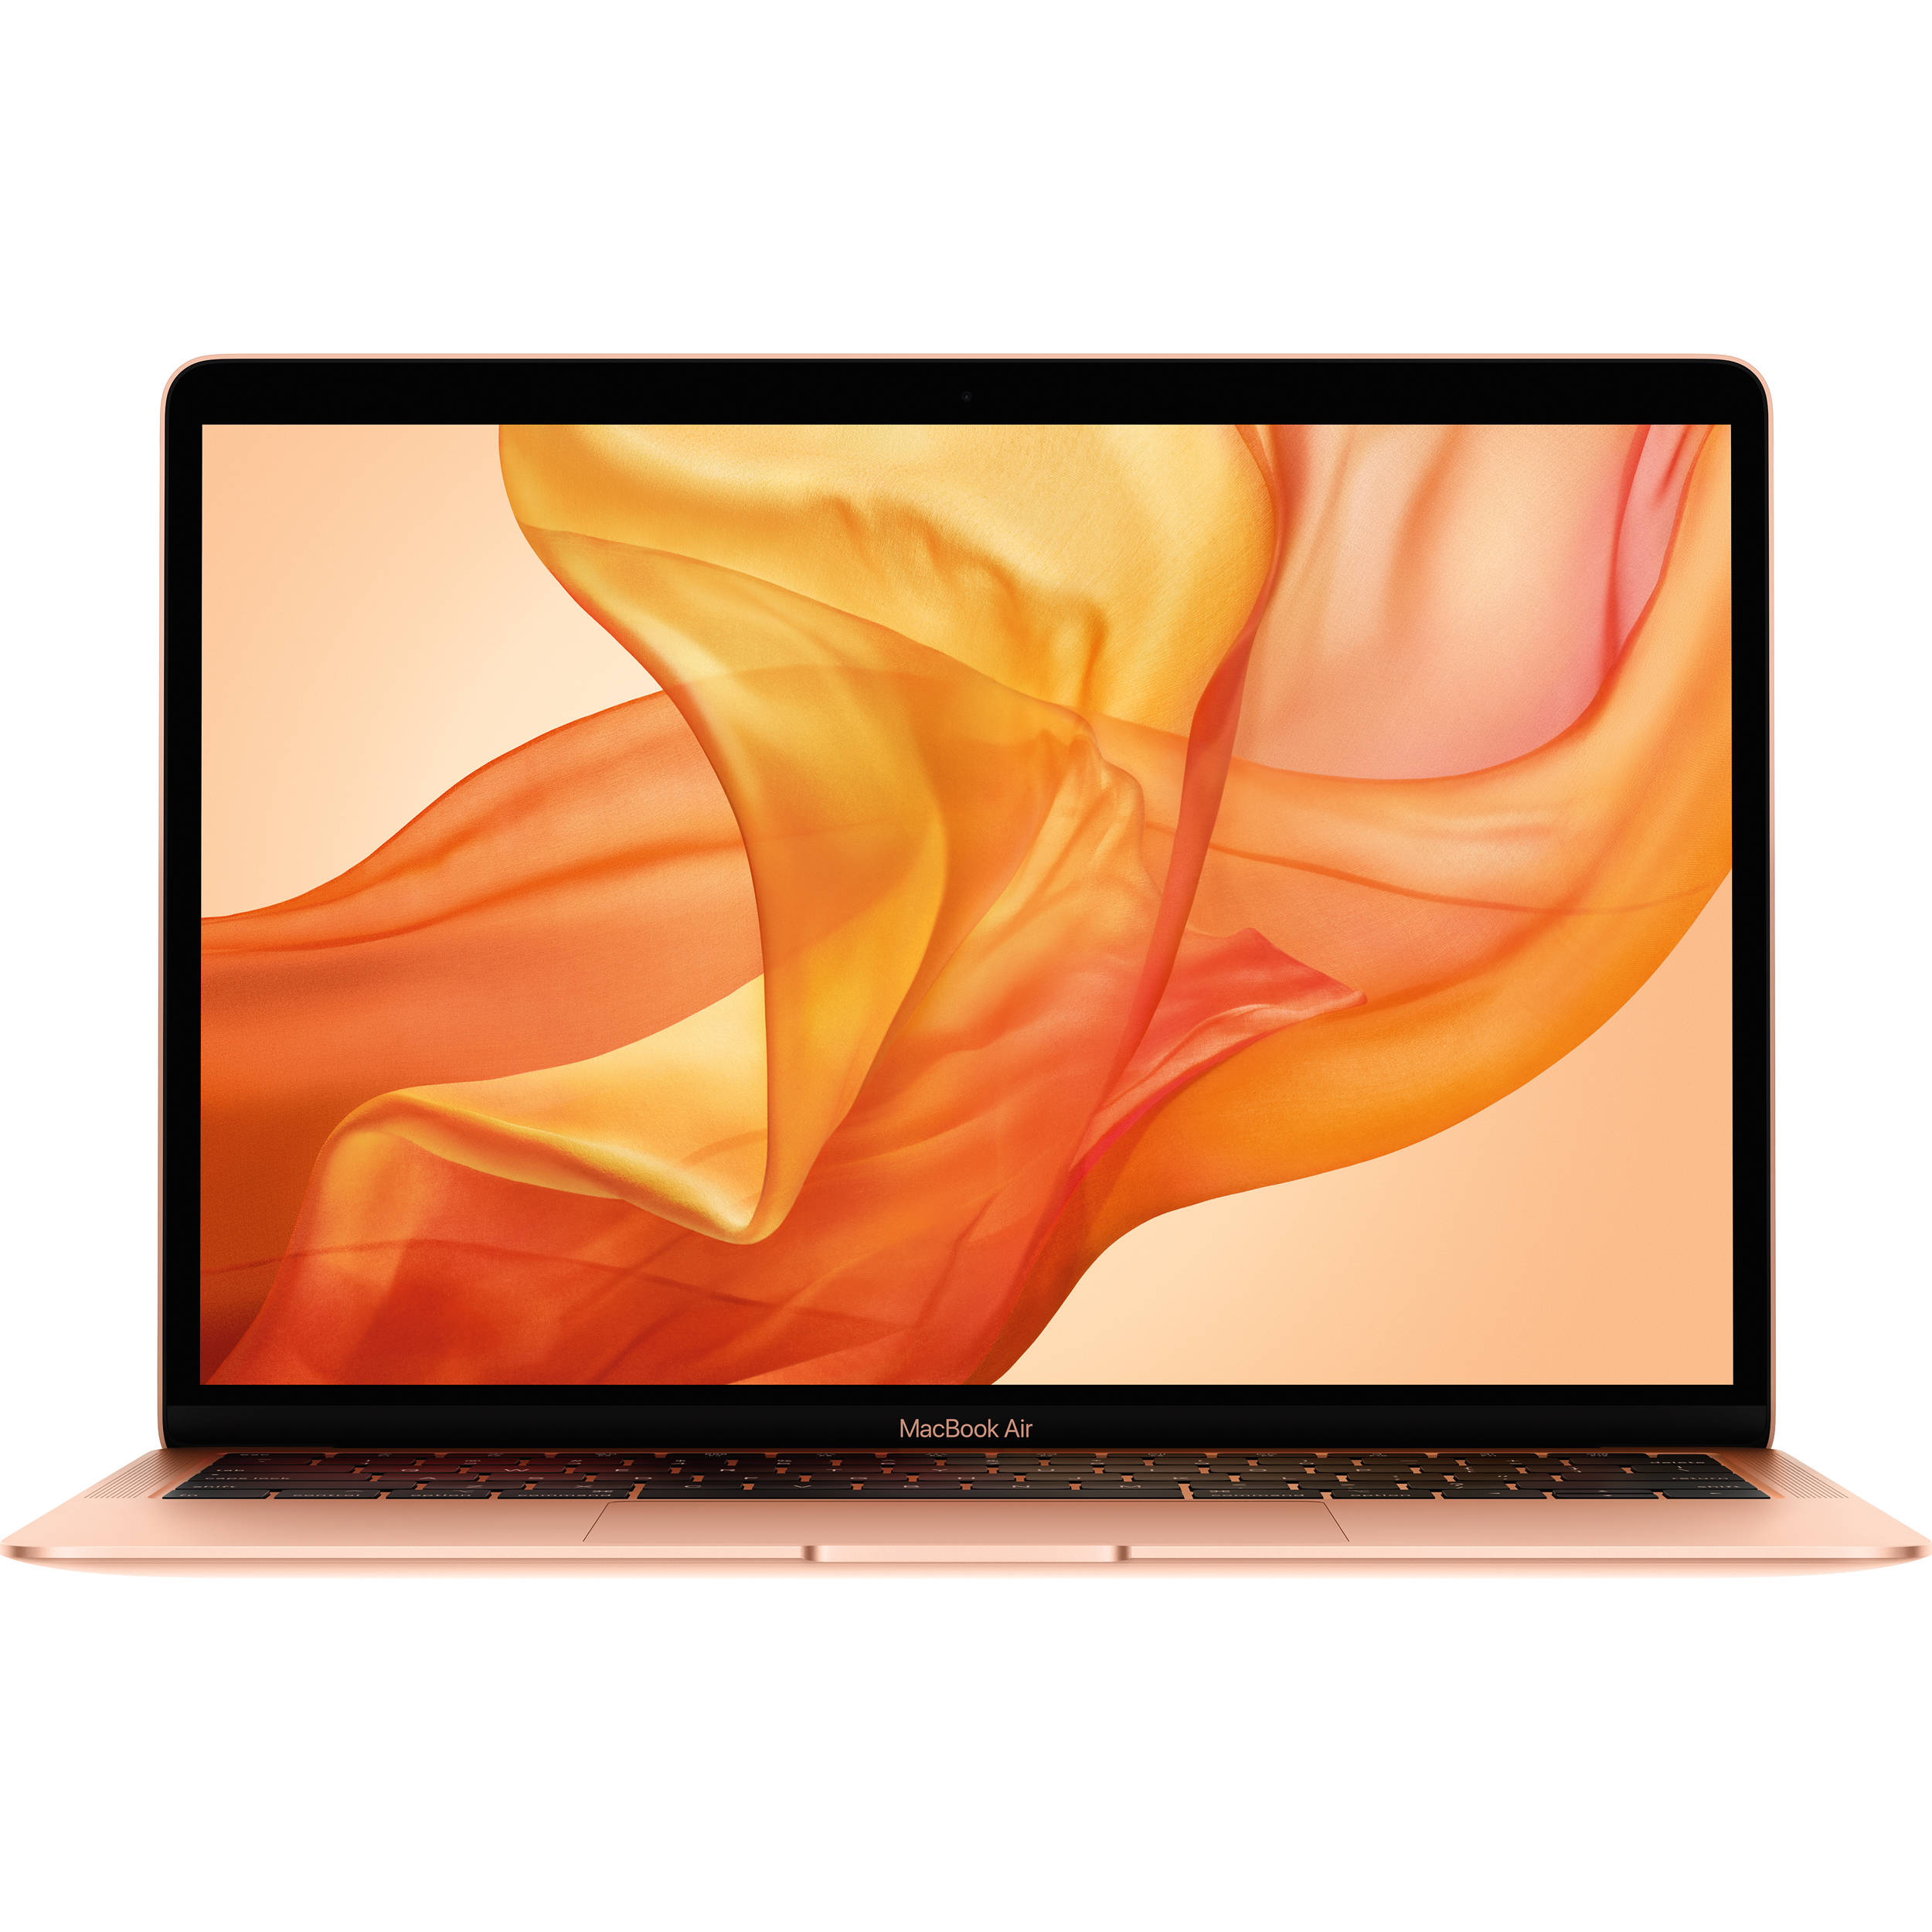 Macbook Air 13 Inch 2019 128GB SSD (Sliver, Gold, Space Gray) New 99%